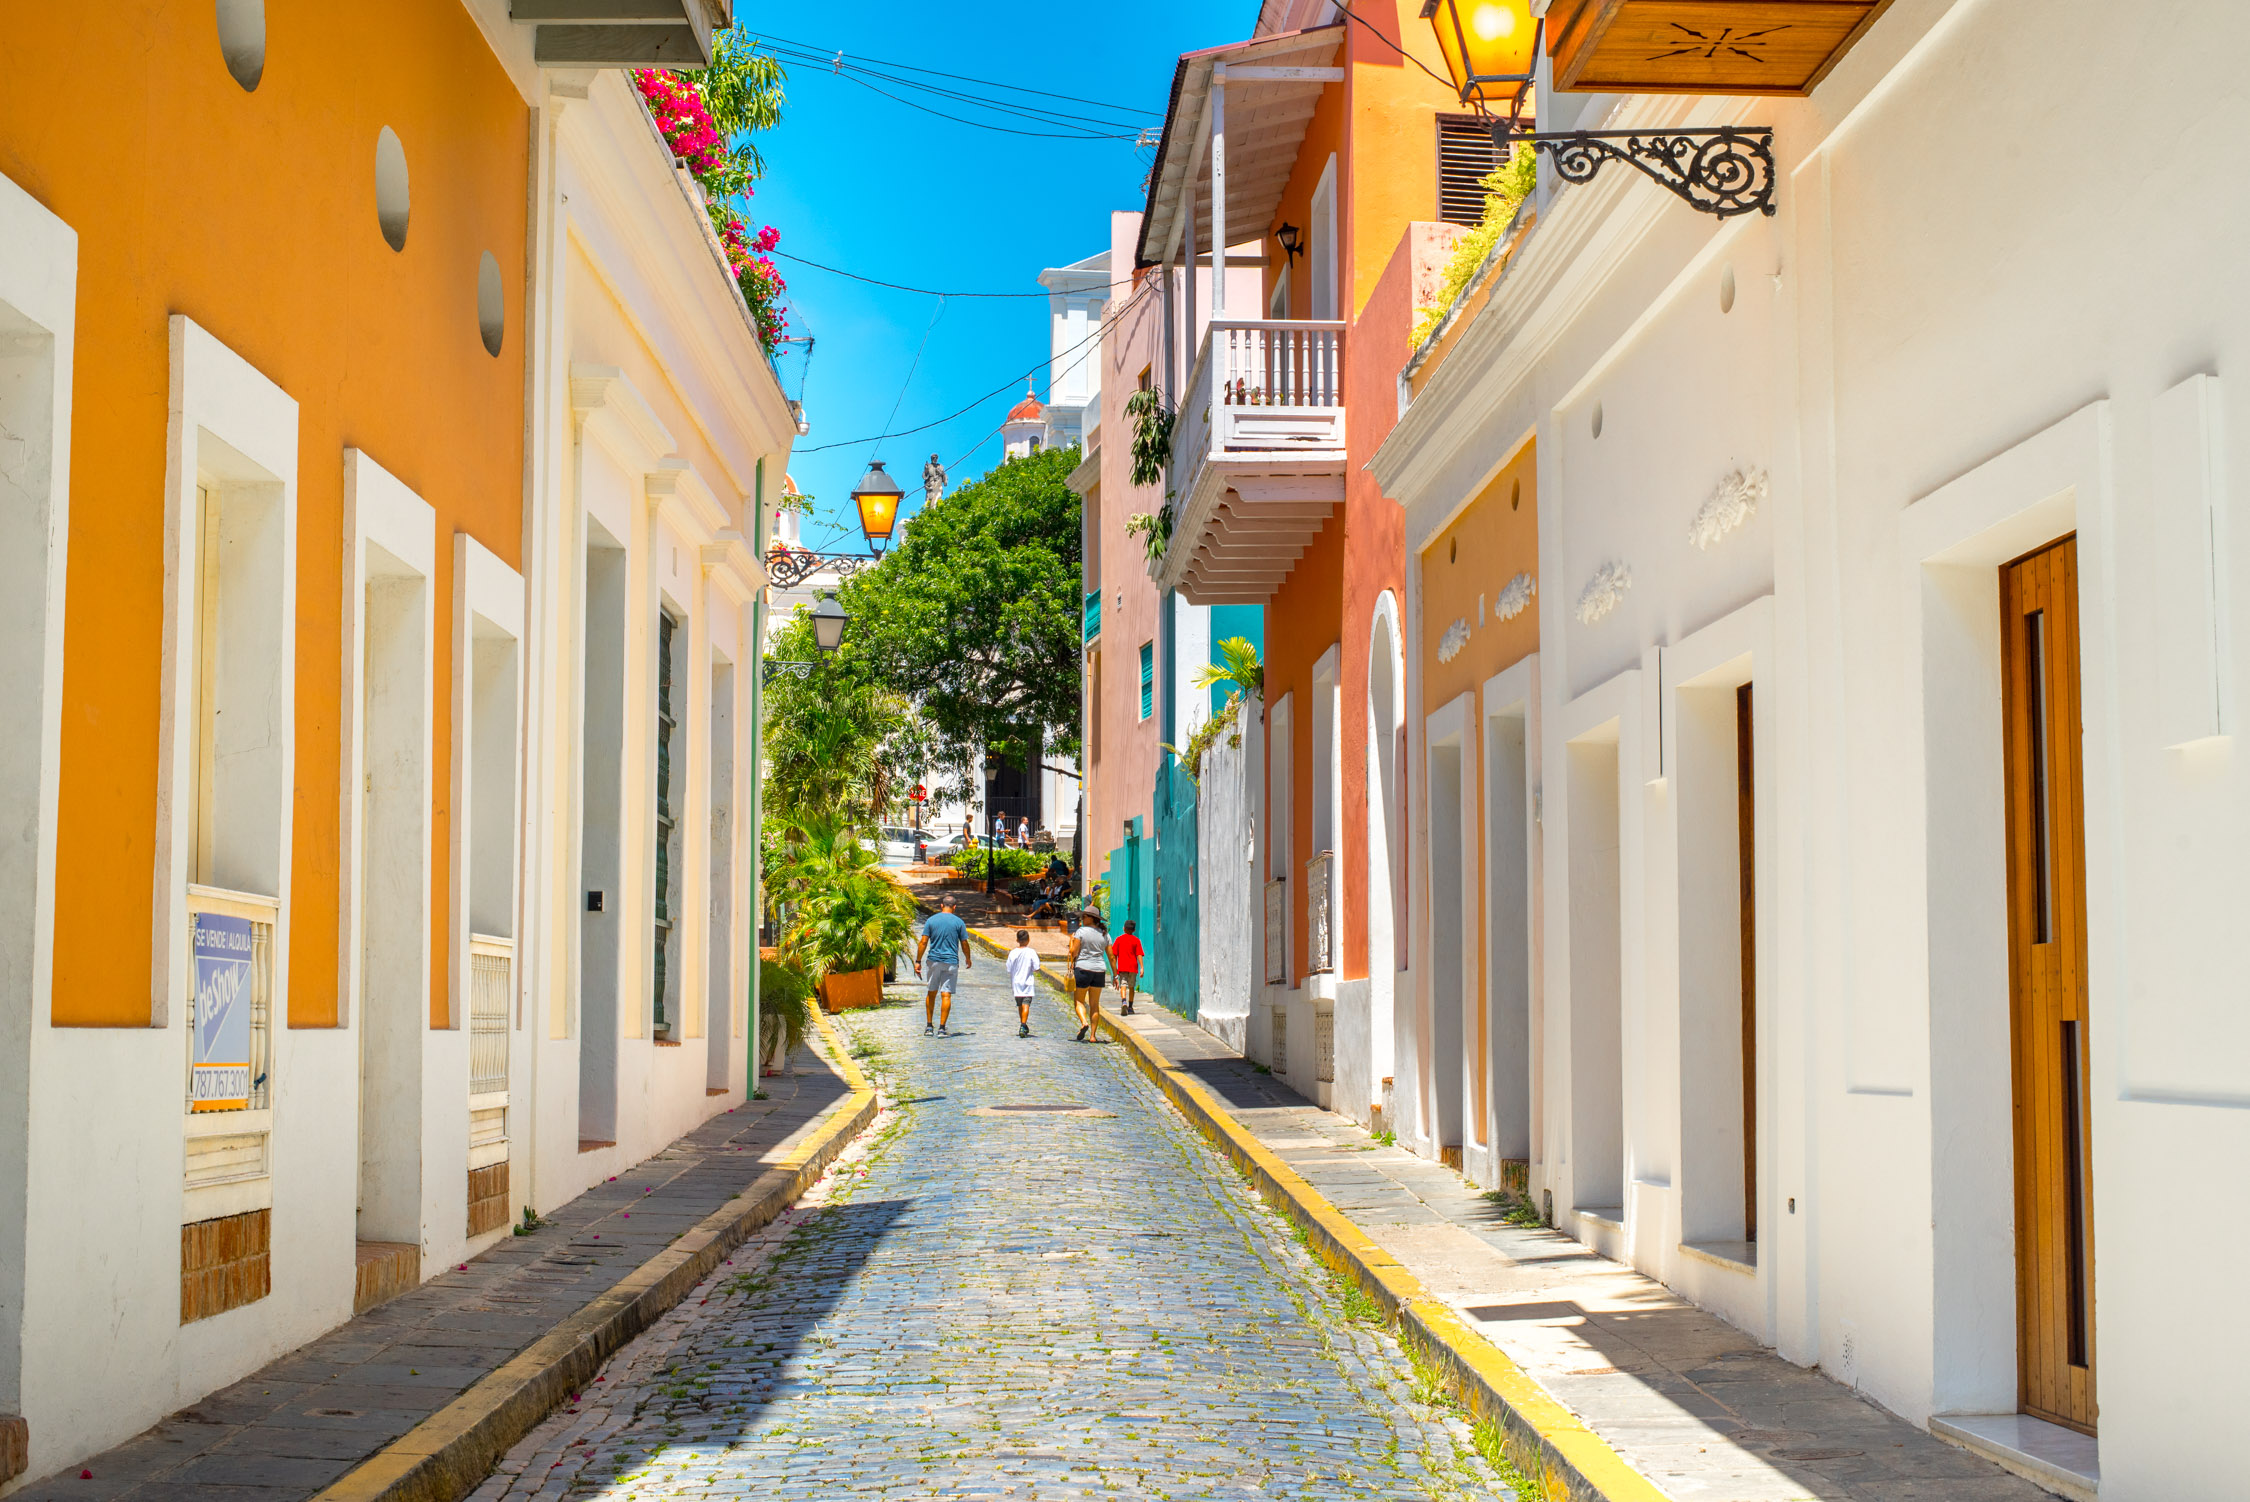 The streets of Old San Juan, Puerto Rico